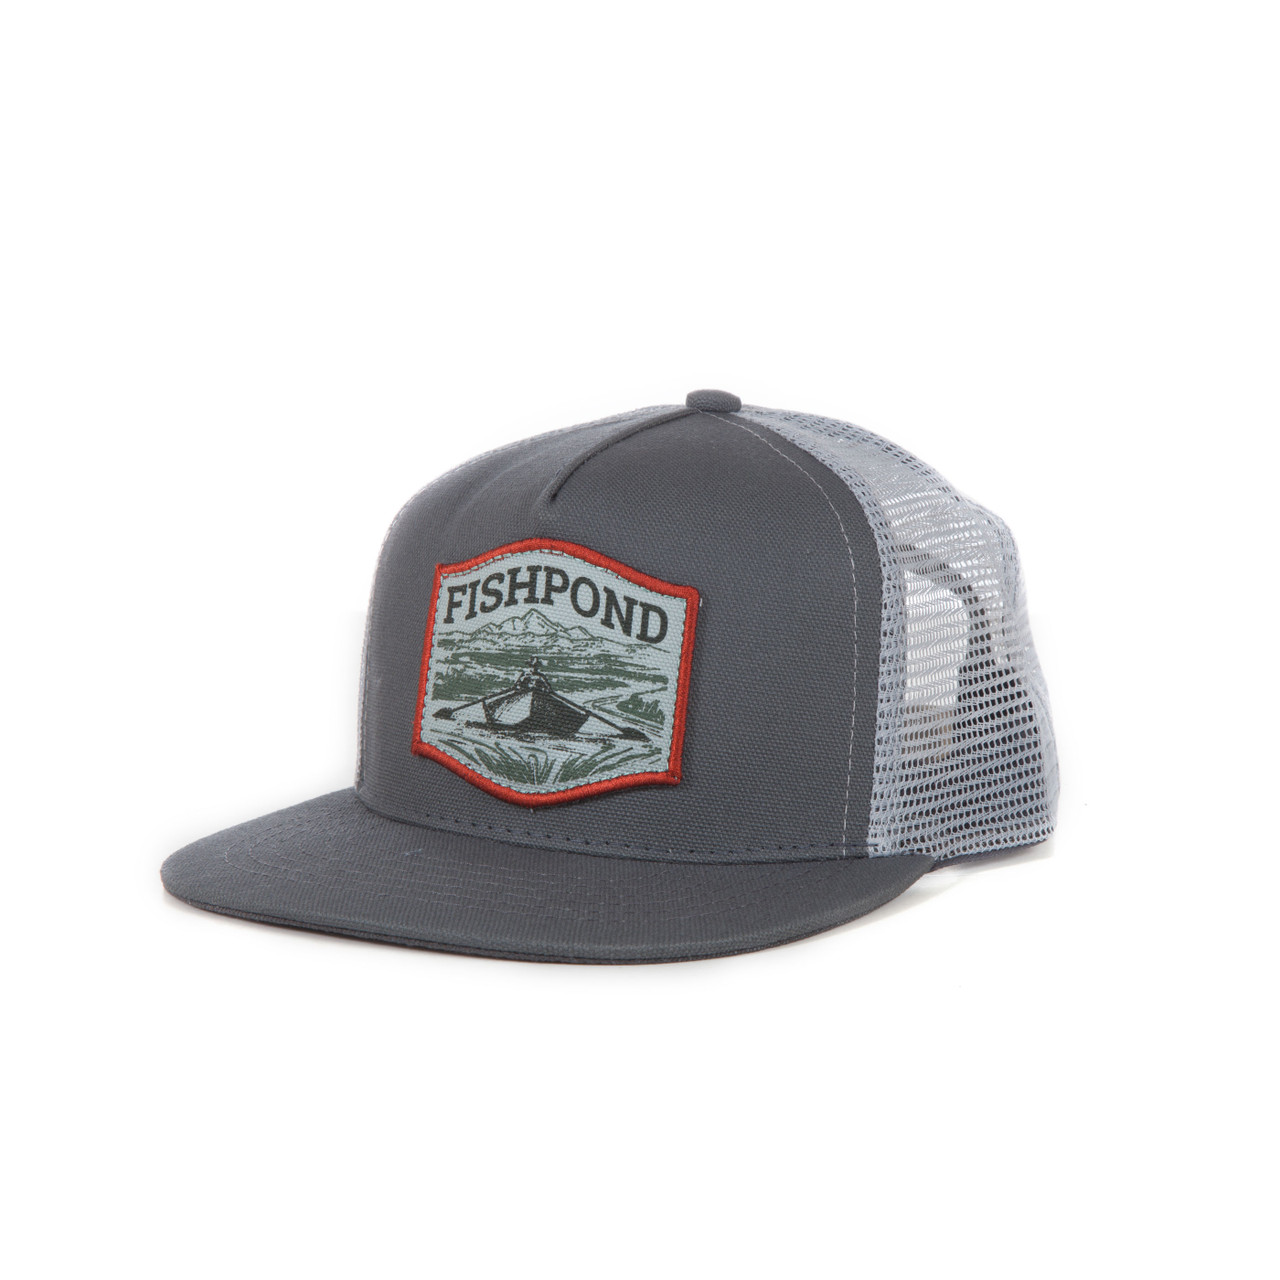 Fishpond Drifter Low Profile Cap, Granite/Clouds